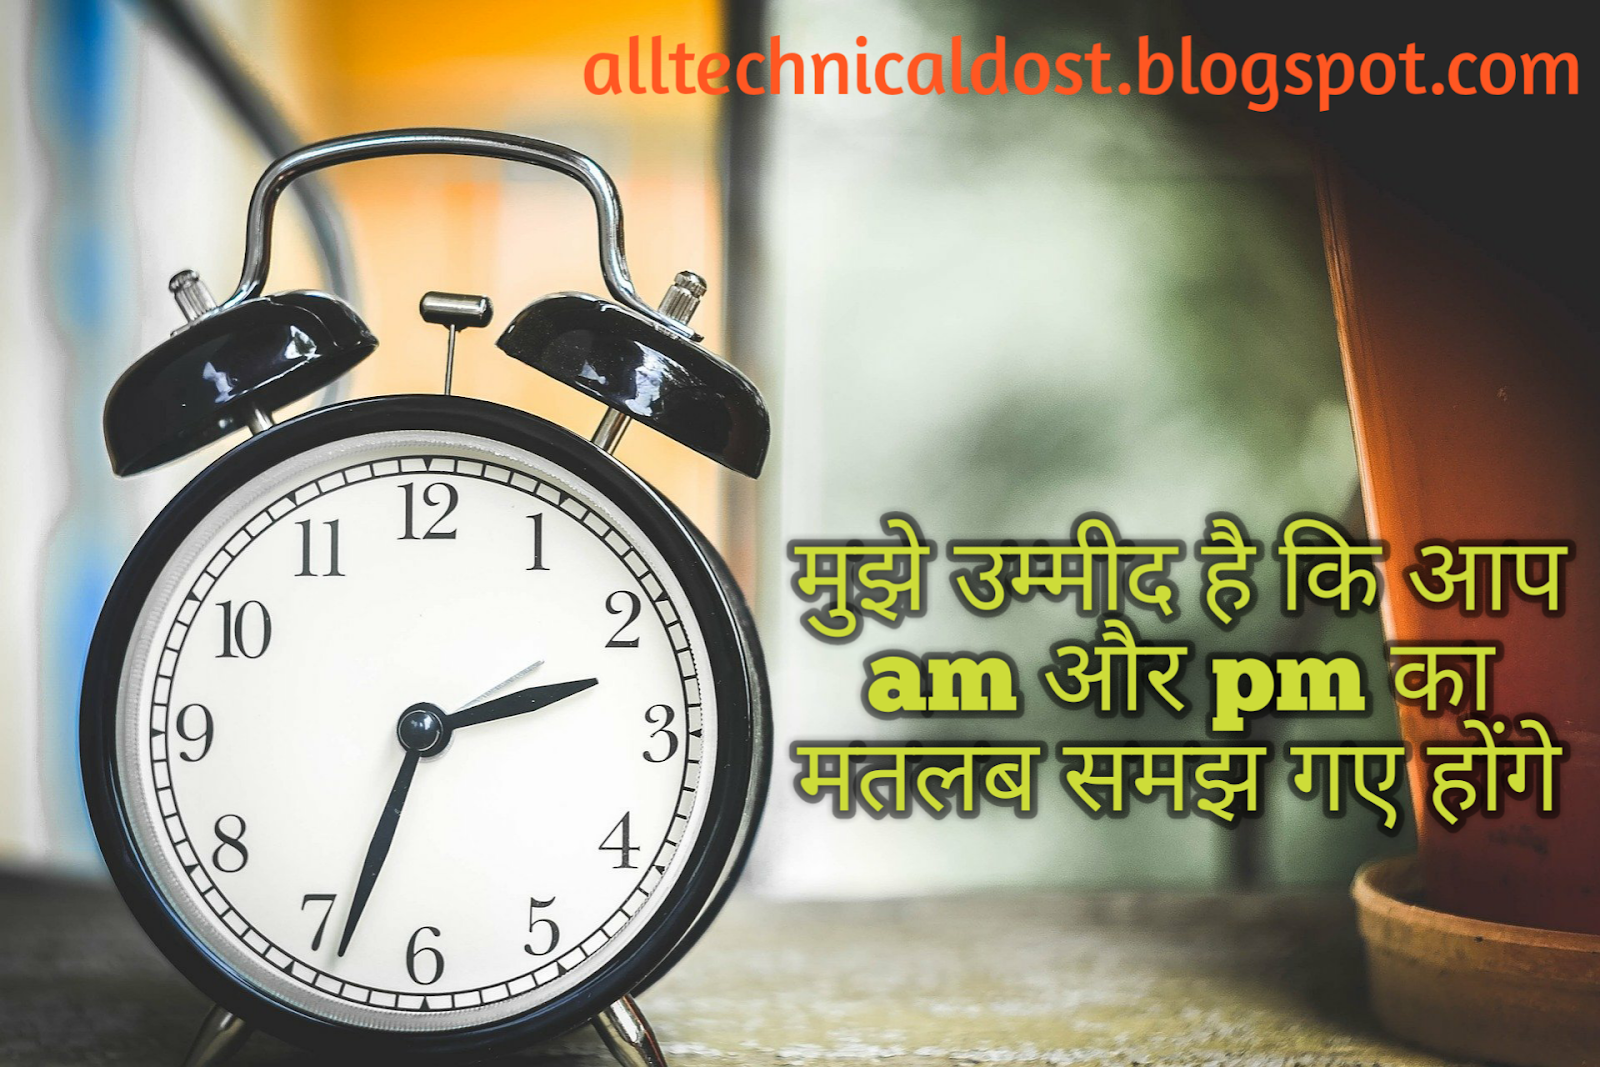 """am and pm full meaning, am and pm full form in hindi, am and pm full form wiki, """"what is full meaning of am pm"""","""